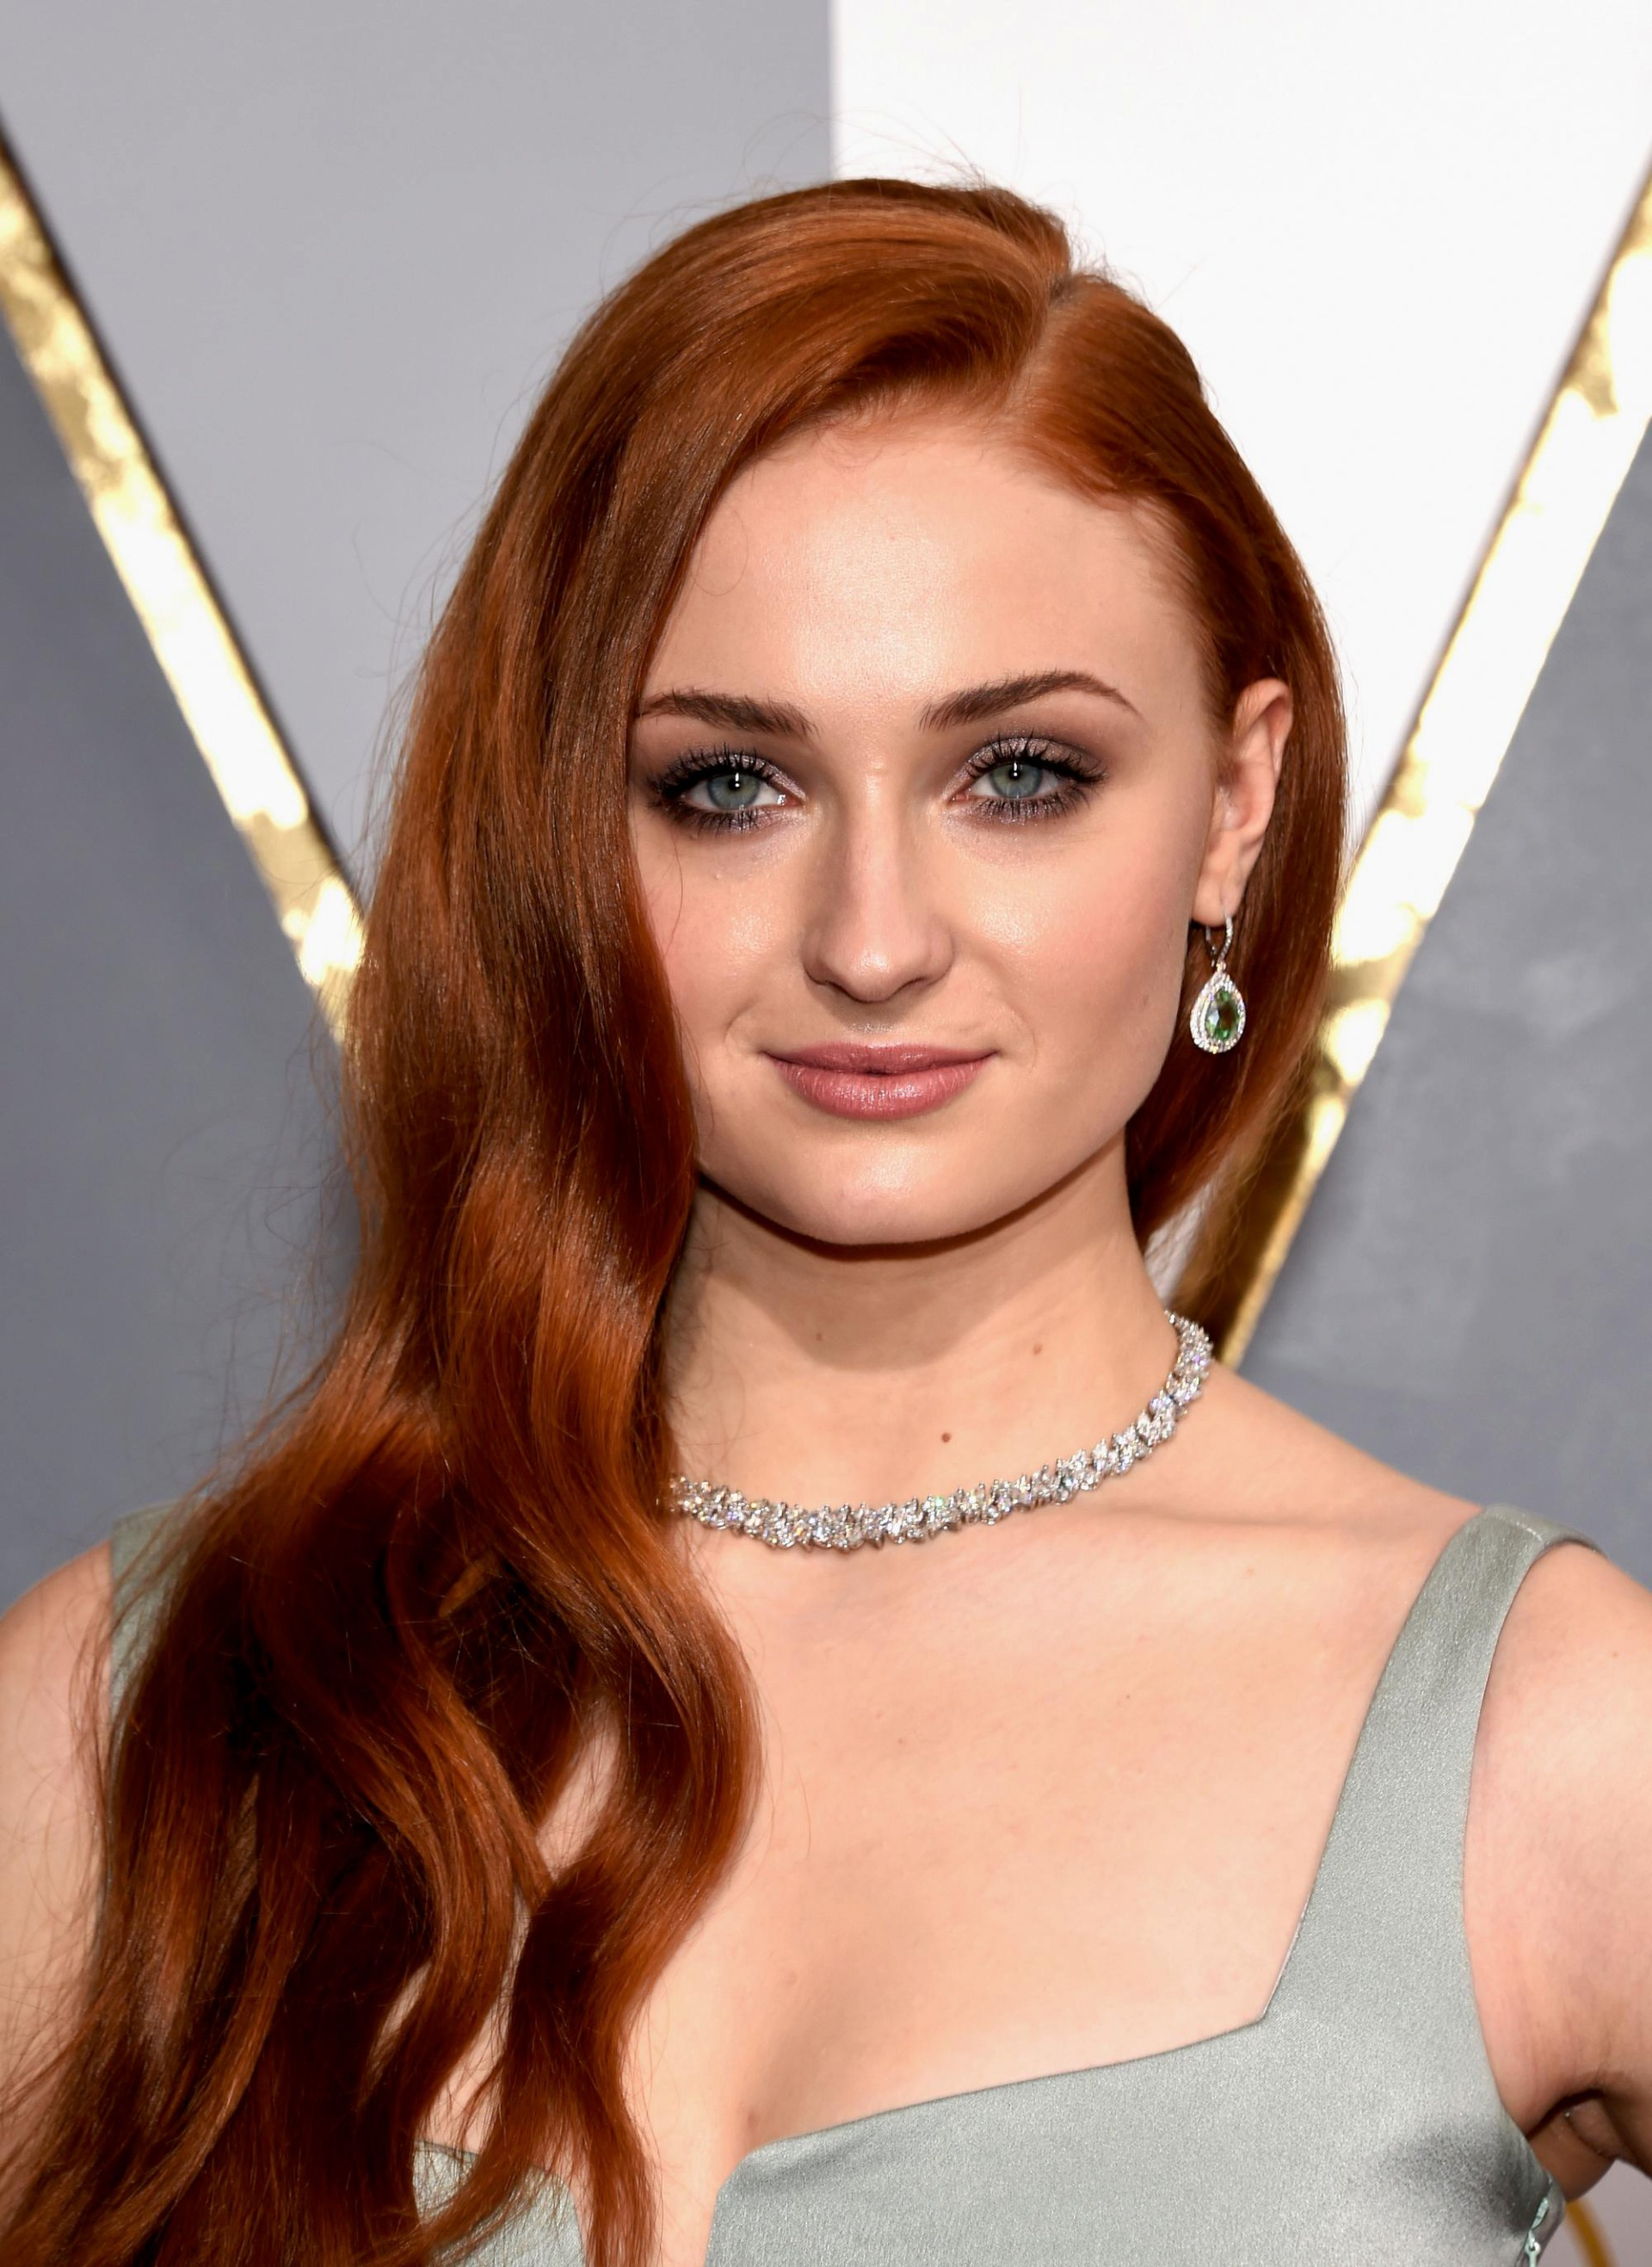 Sophie Turner 5 Hot Celebs Home